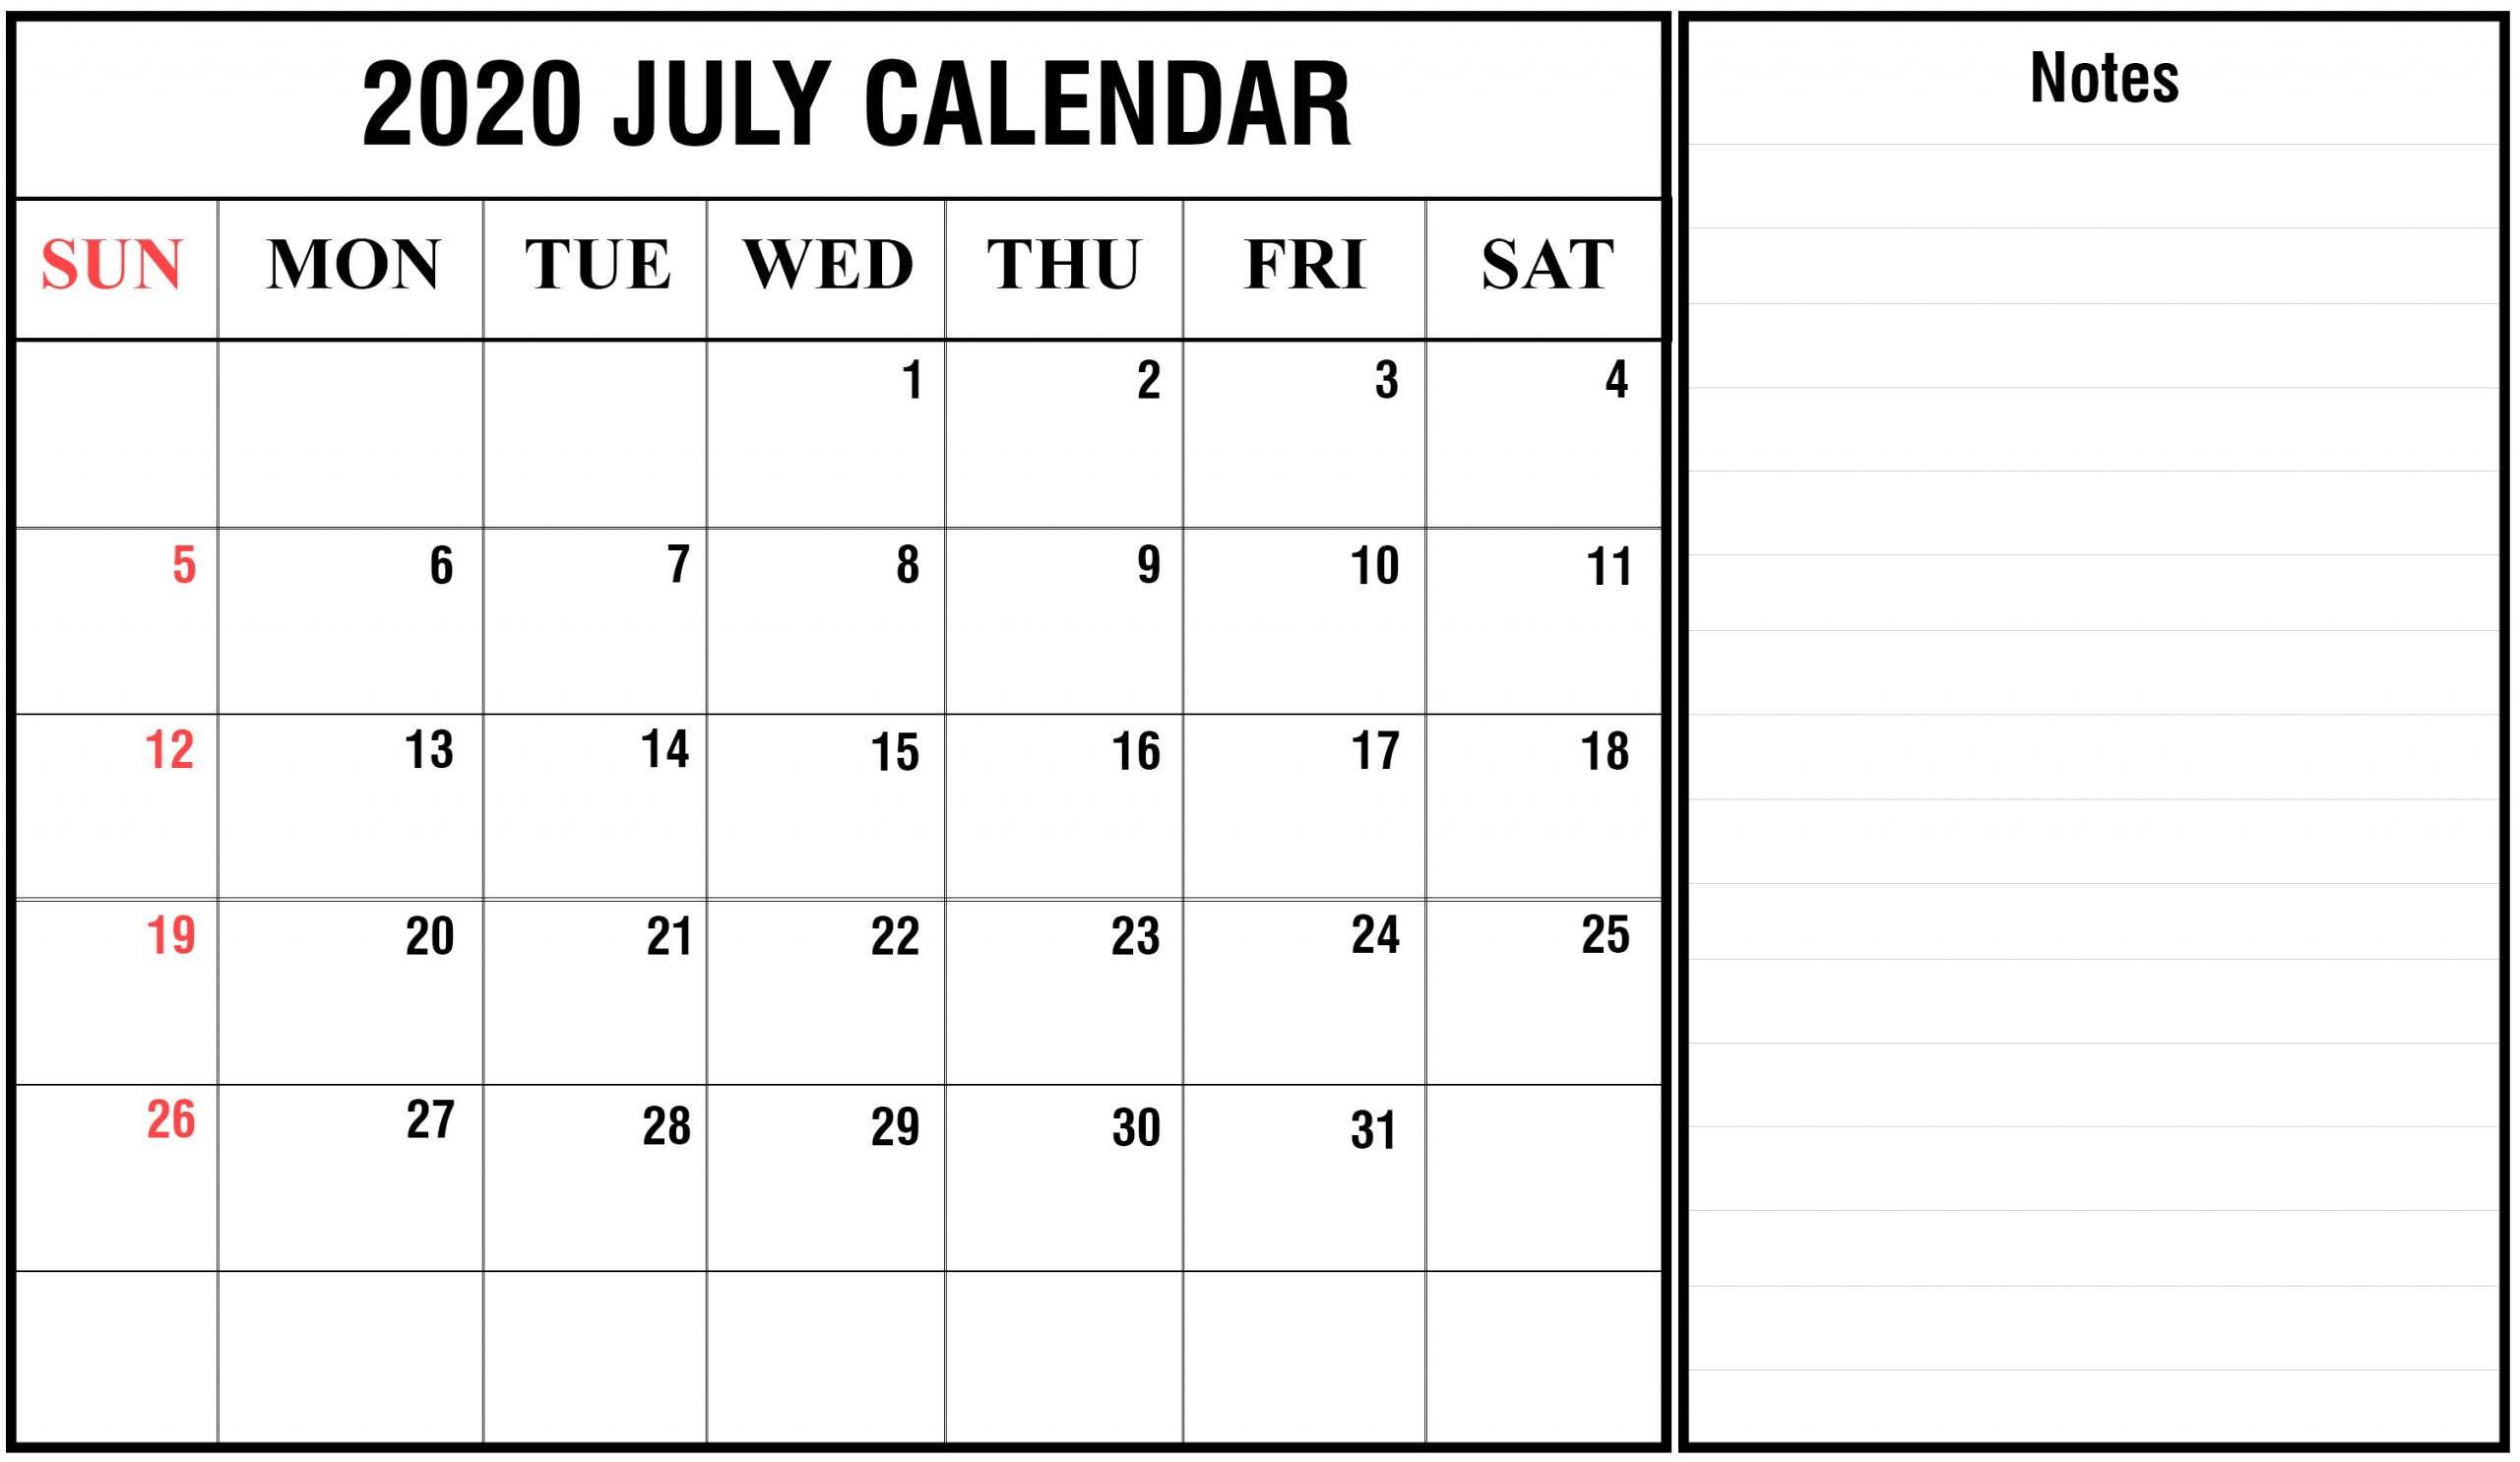 Awesome July 2020 Calendar Pdf, Word, Excel Template Calendar Template With Notes Section